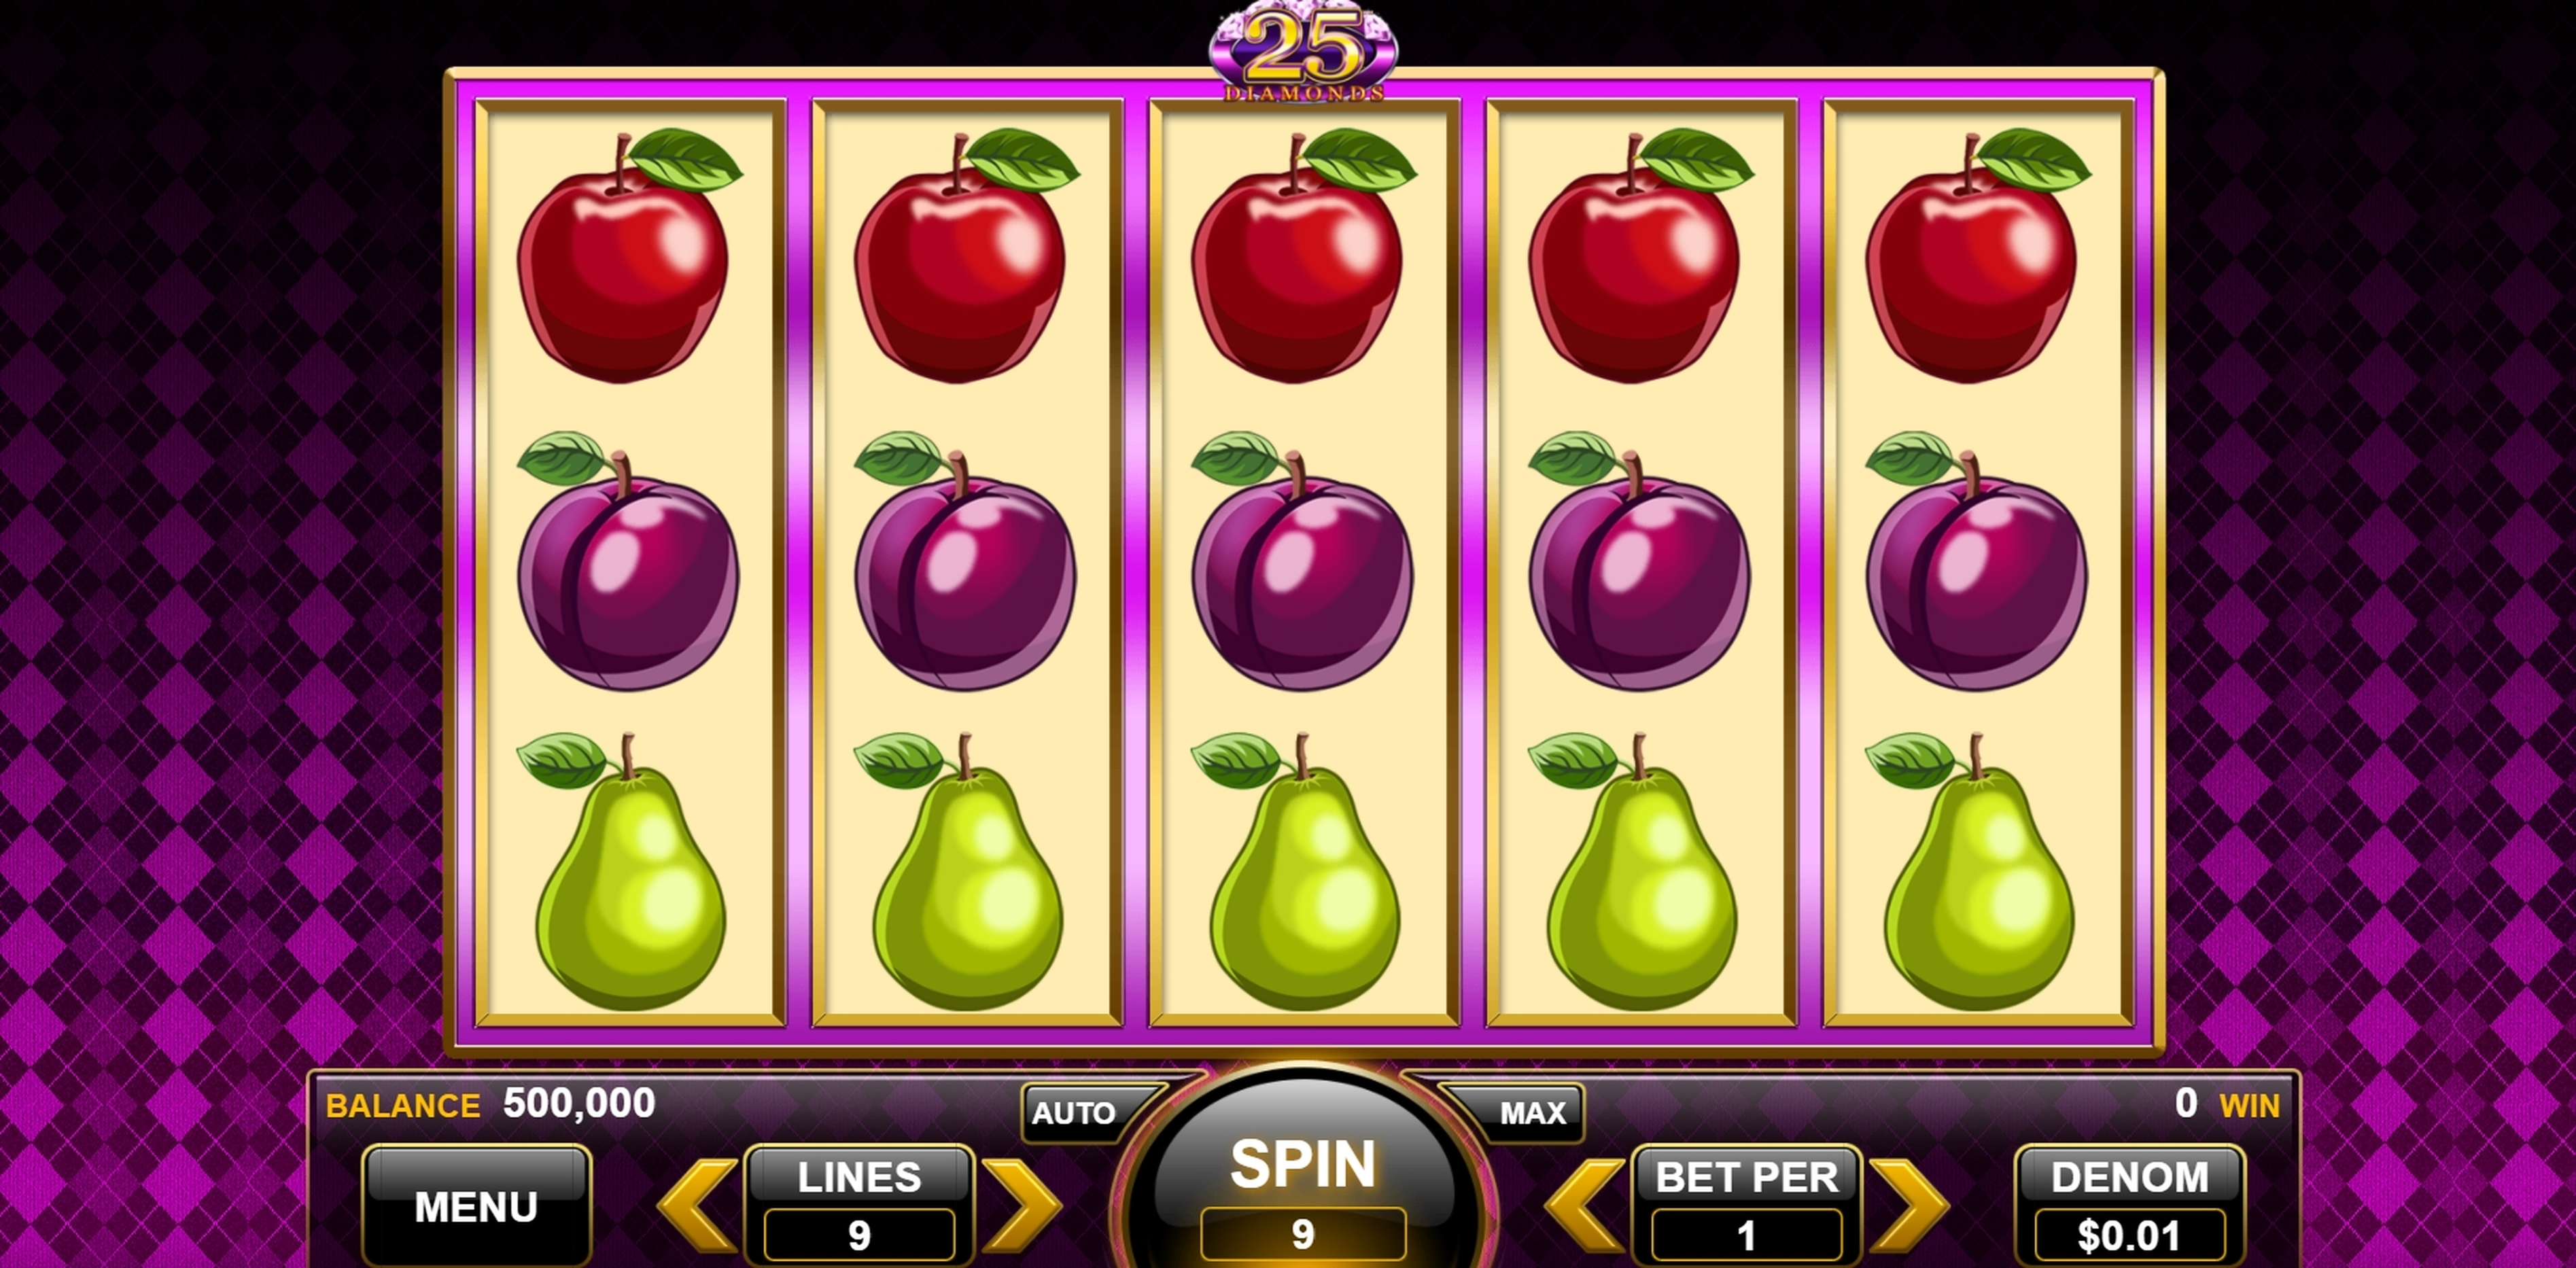 Reels in 25 Diamonds Slot Game by Spin Games